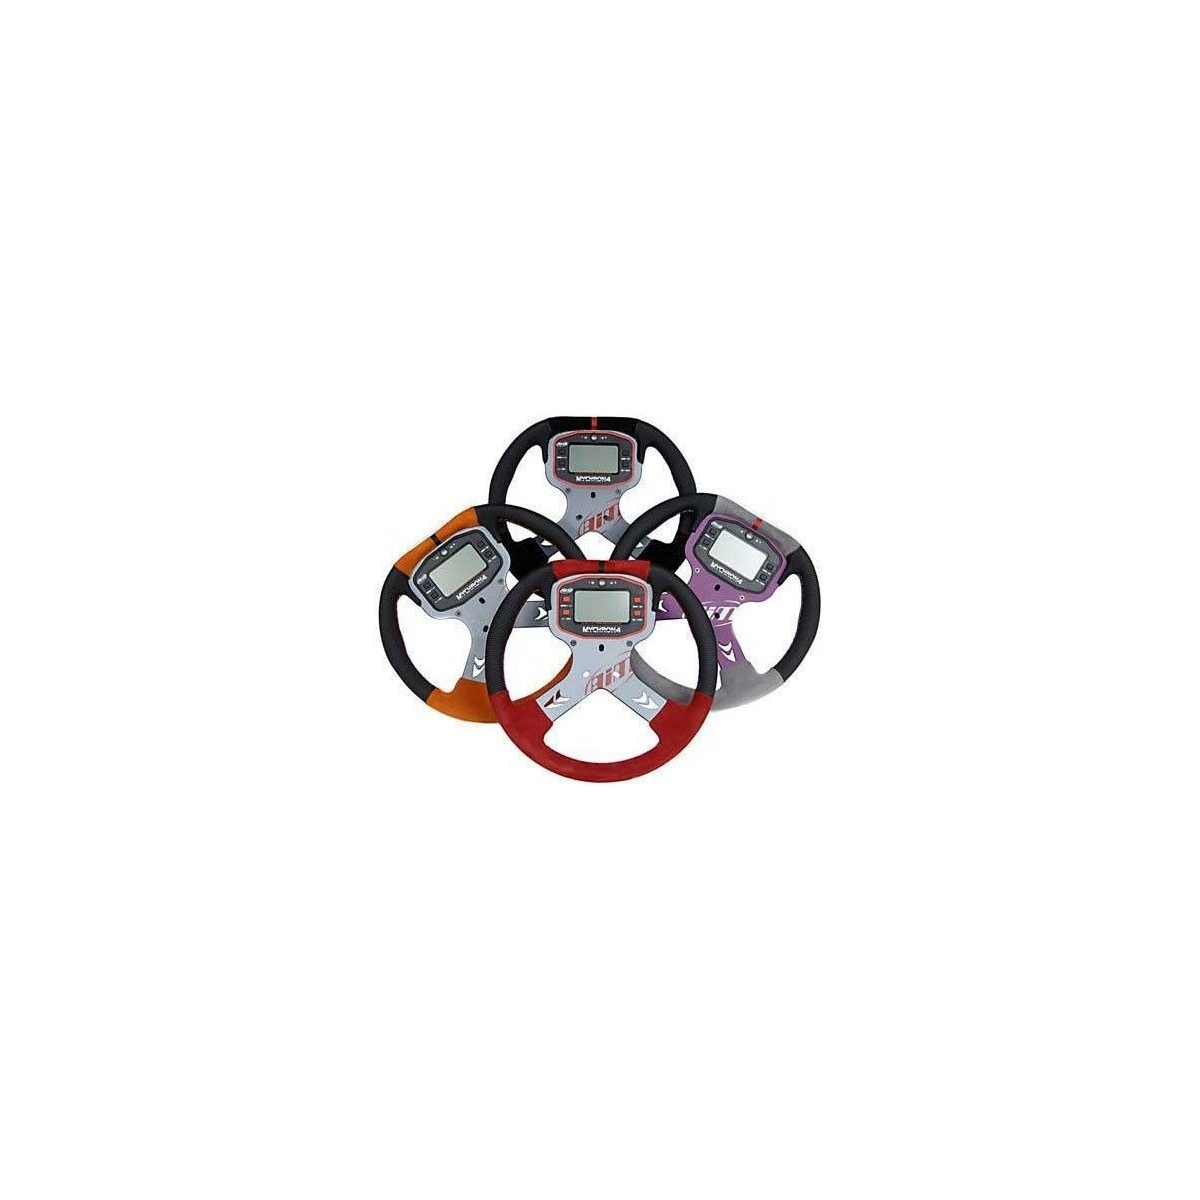 AiM Mychron 4 Sprint Kart Steering Wheel